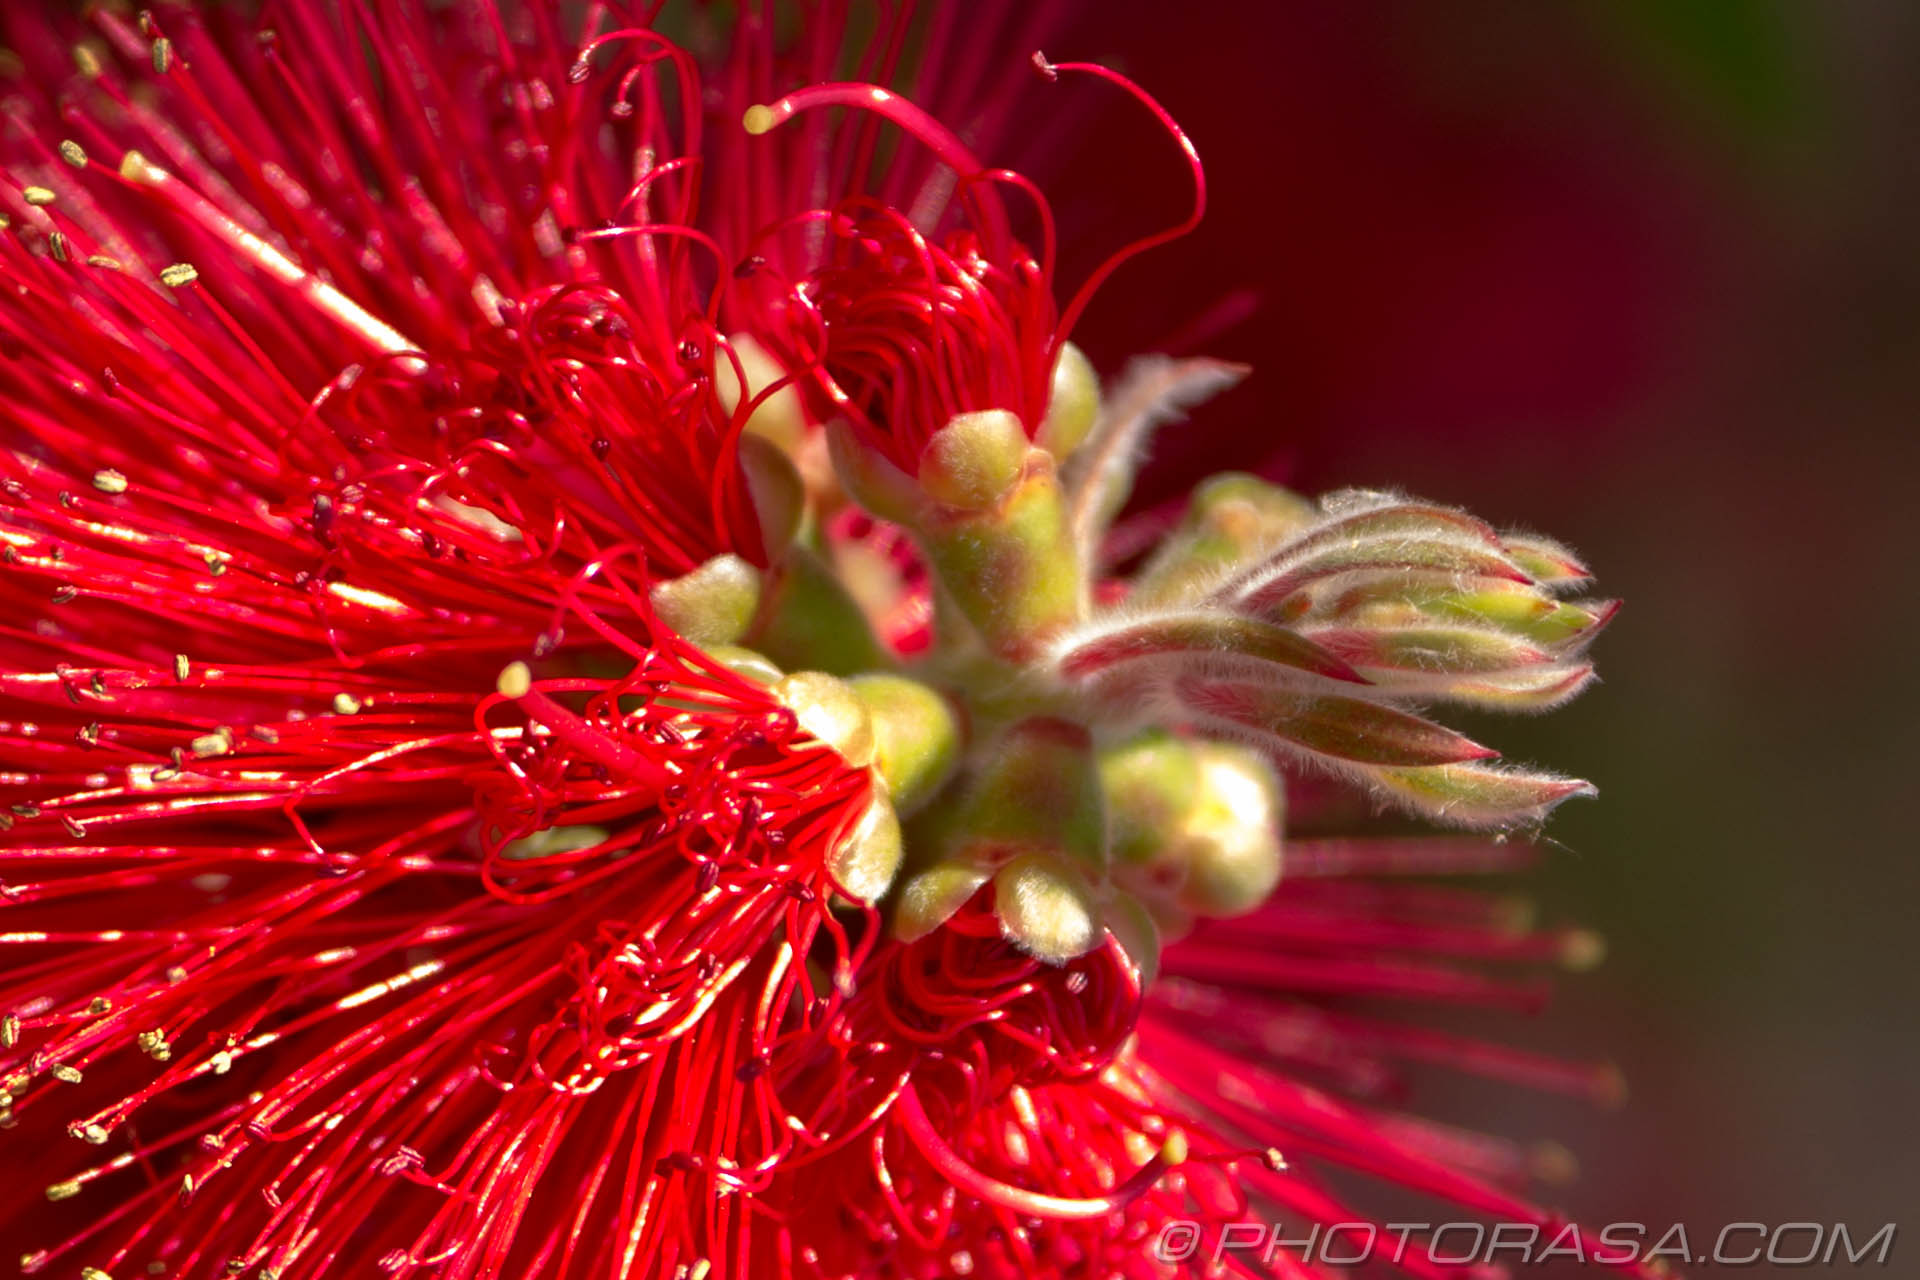 https://photorasa.com/strange-exotic-flowers/red-spaghetti-flower/